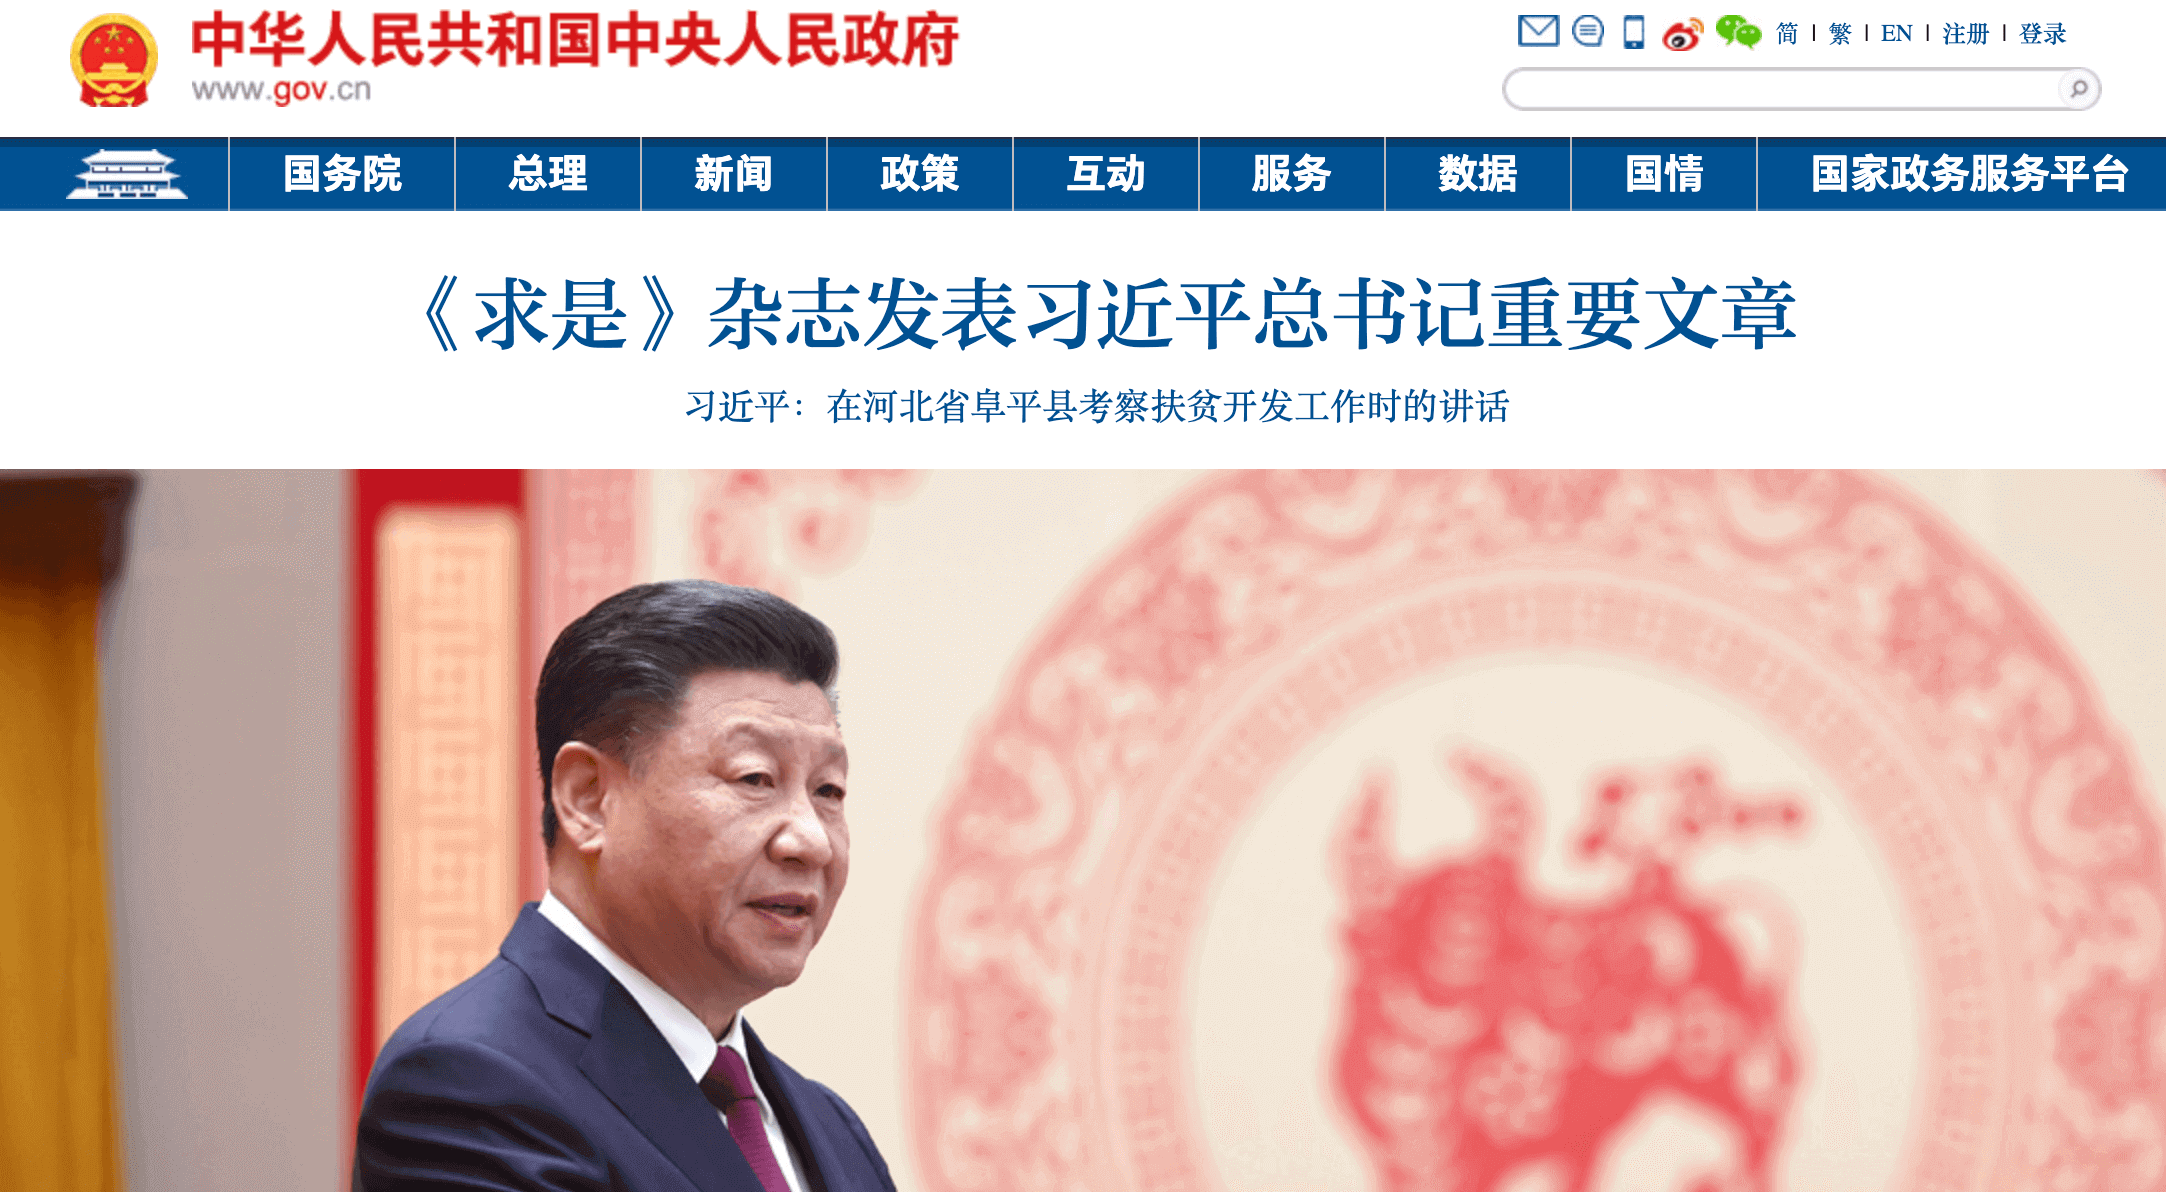 Chinese Goverment Official Website